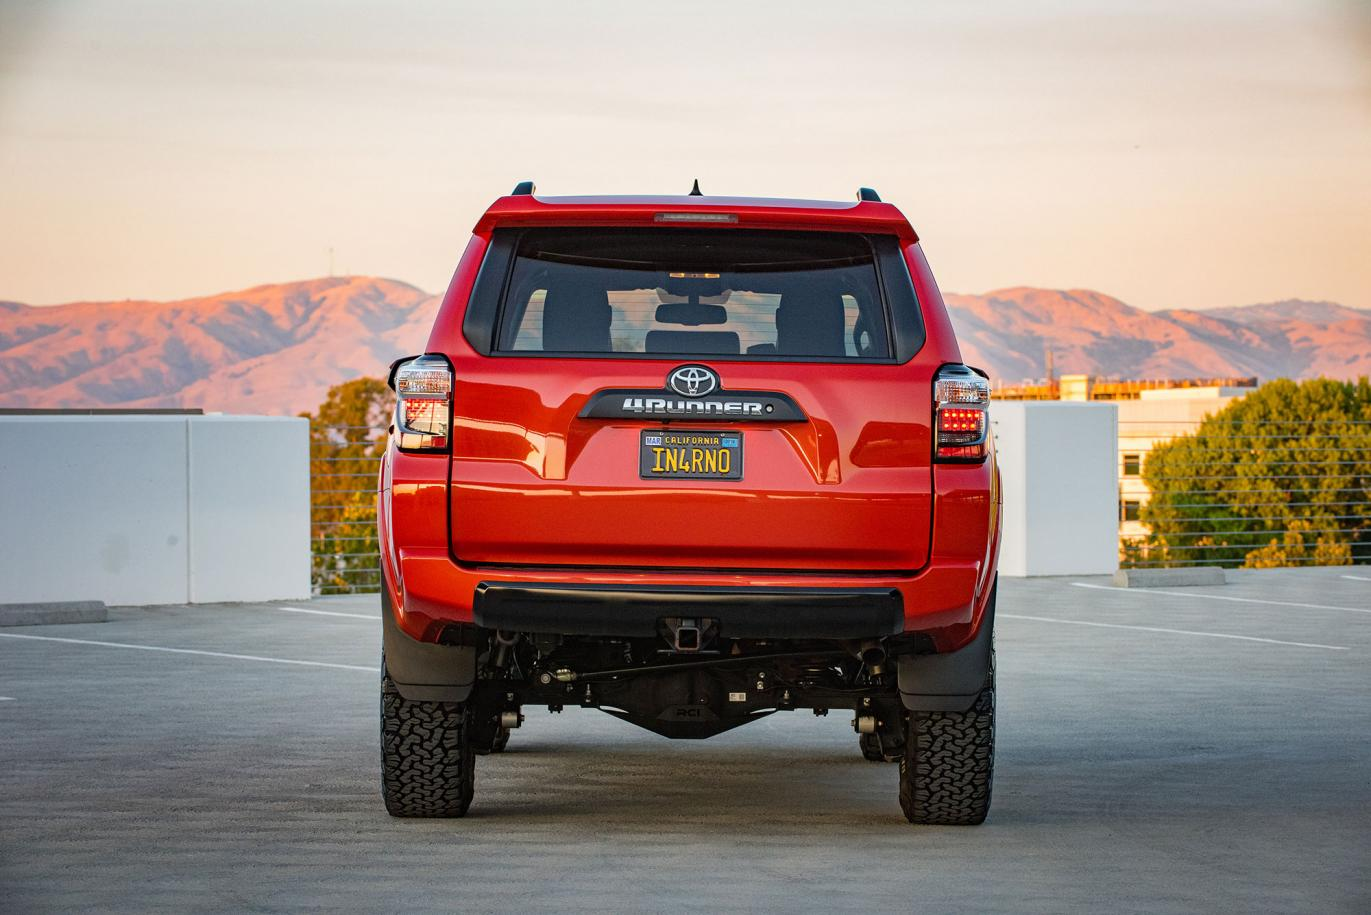 FS: Pristine, Commemorative Inferno Red 2015 4Runner TRD Pro, 31K miles, CA Bay Area-dsc_4509-jpg